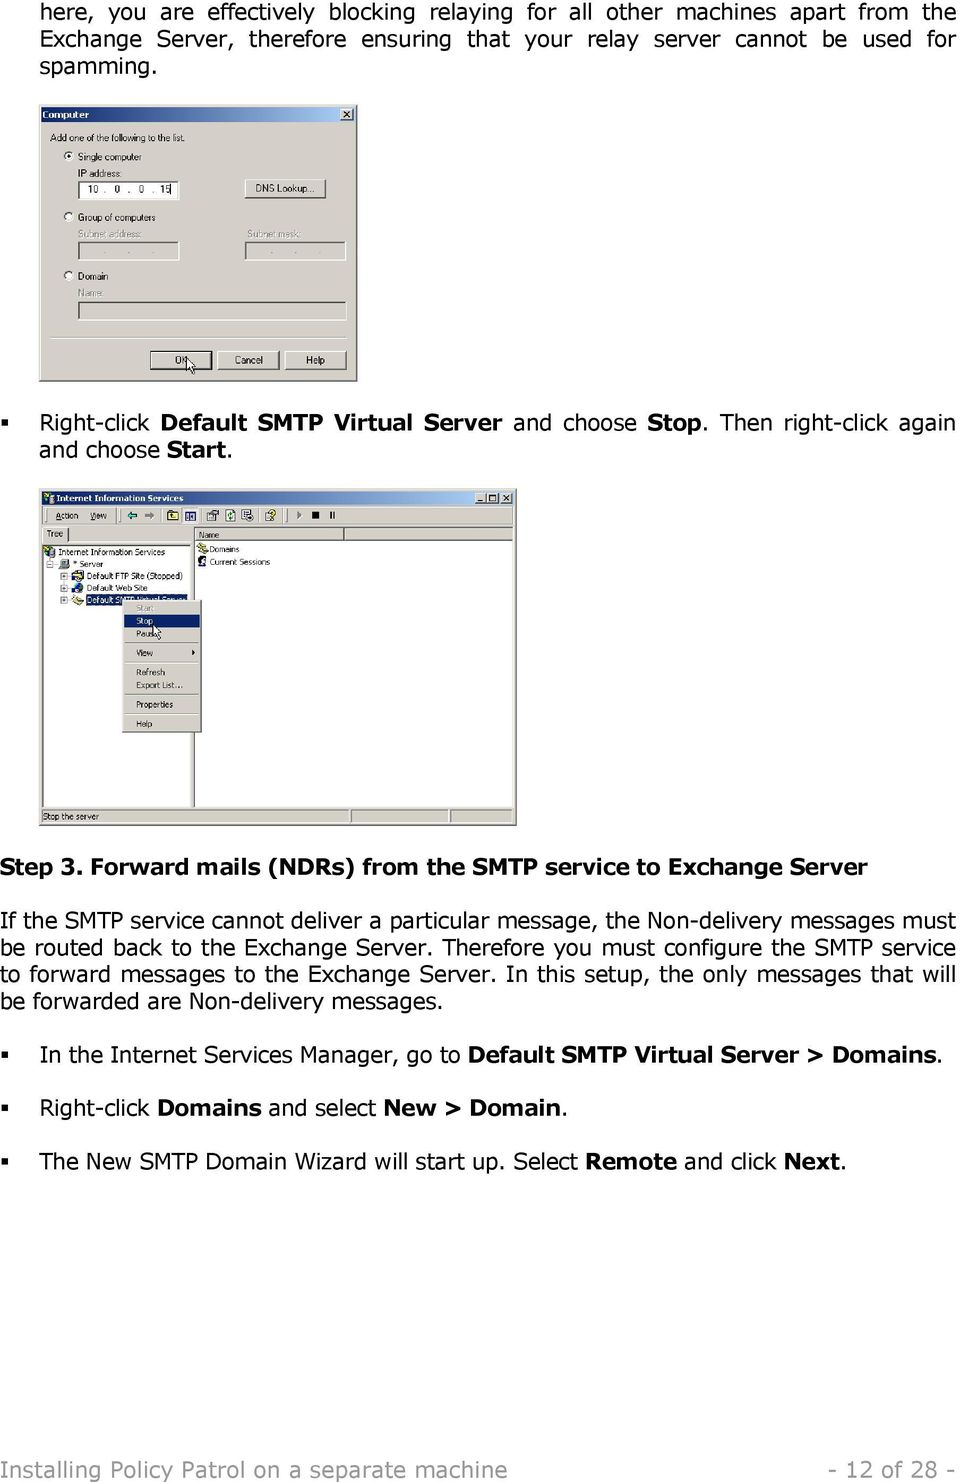 Forward mails (NDRs) from the SMTP service to Exchange Server If the SMTP service cannot deliver a particular message, the Non-delivery messages must be routed back to the Exchange Server.